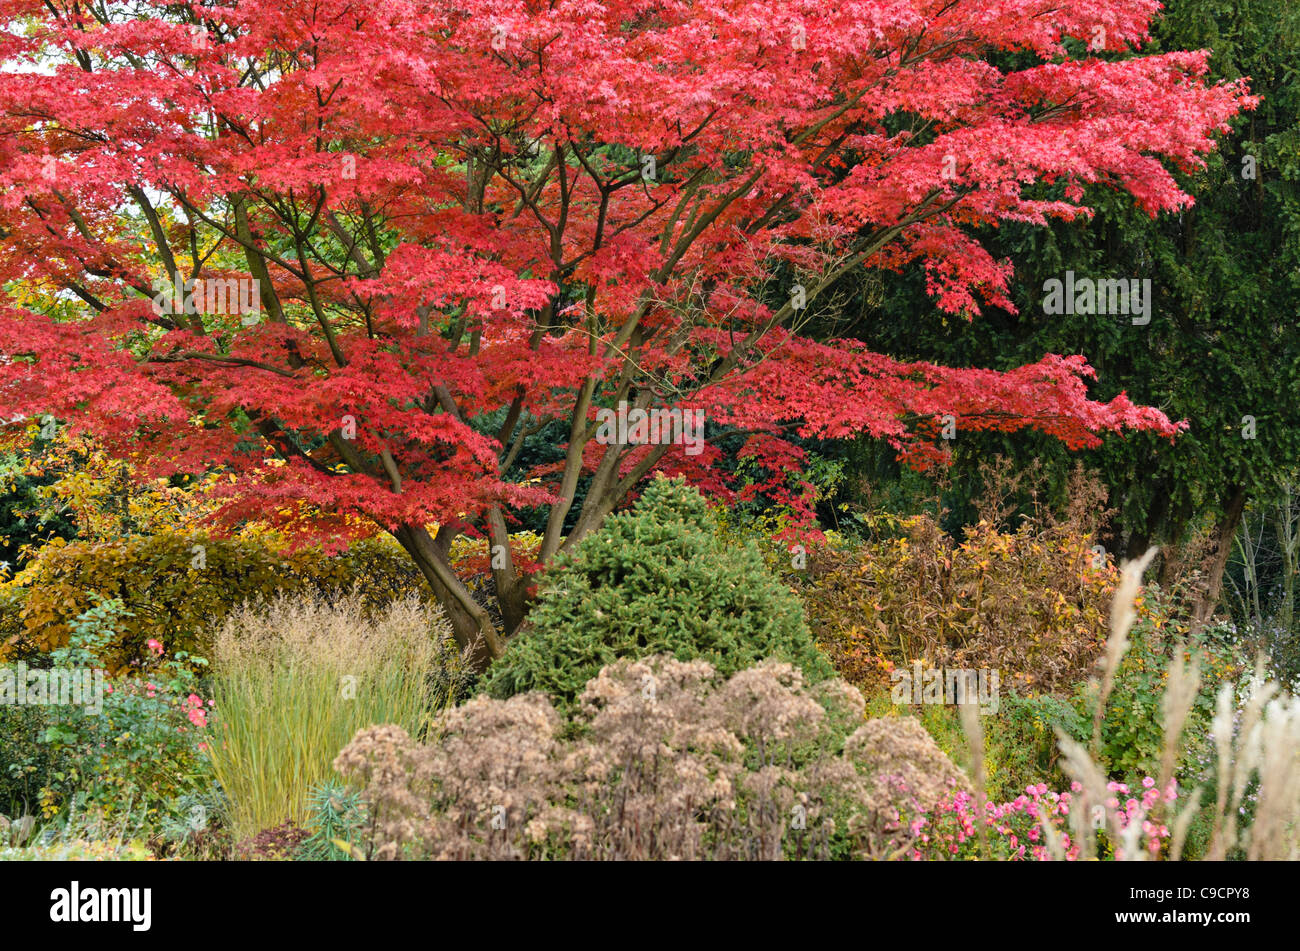 japanischer ahorn acer palmatum 39 autumn glory 39 stockfoto. Black Bedroom Furniture Sets. Home Design Ideas